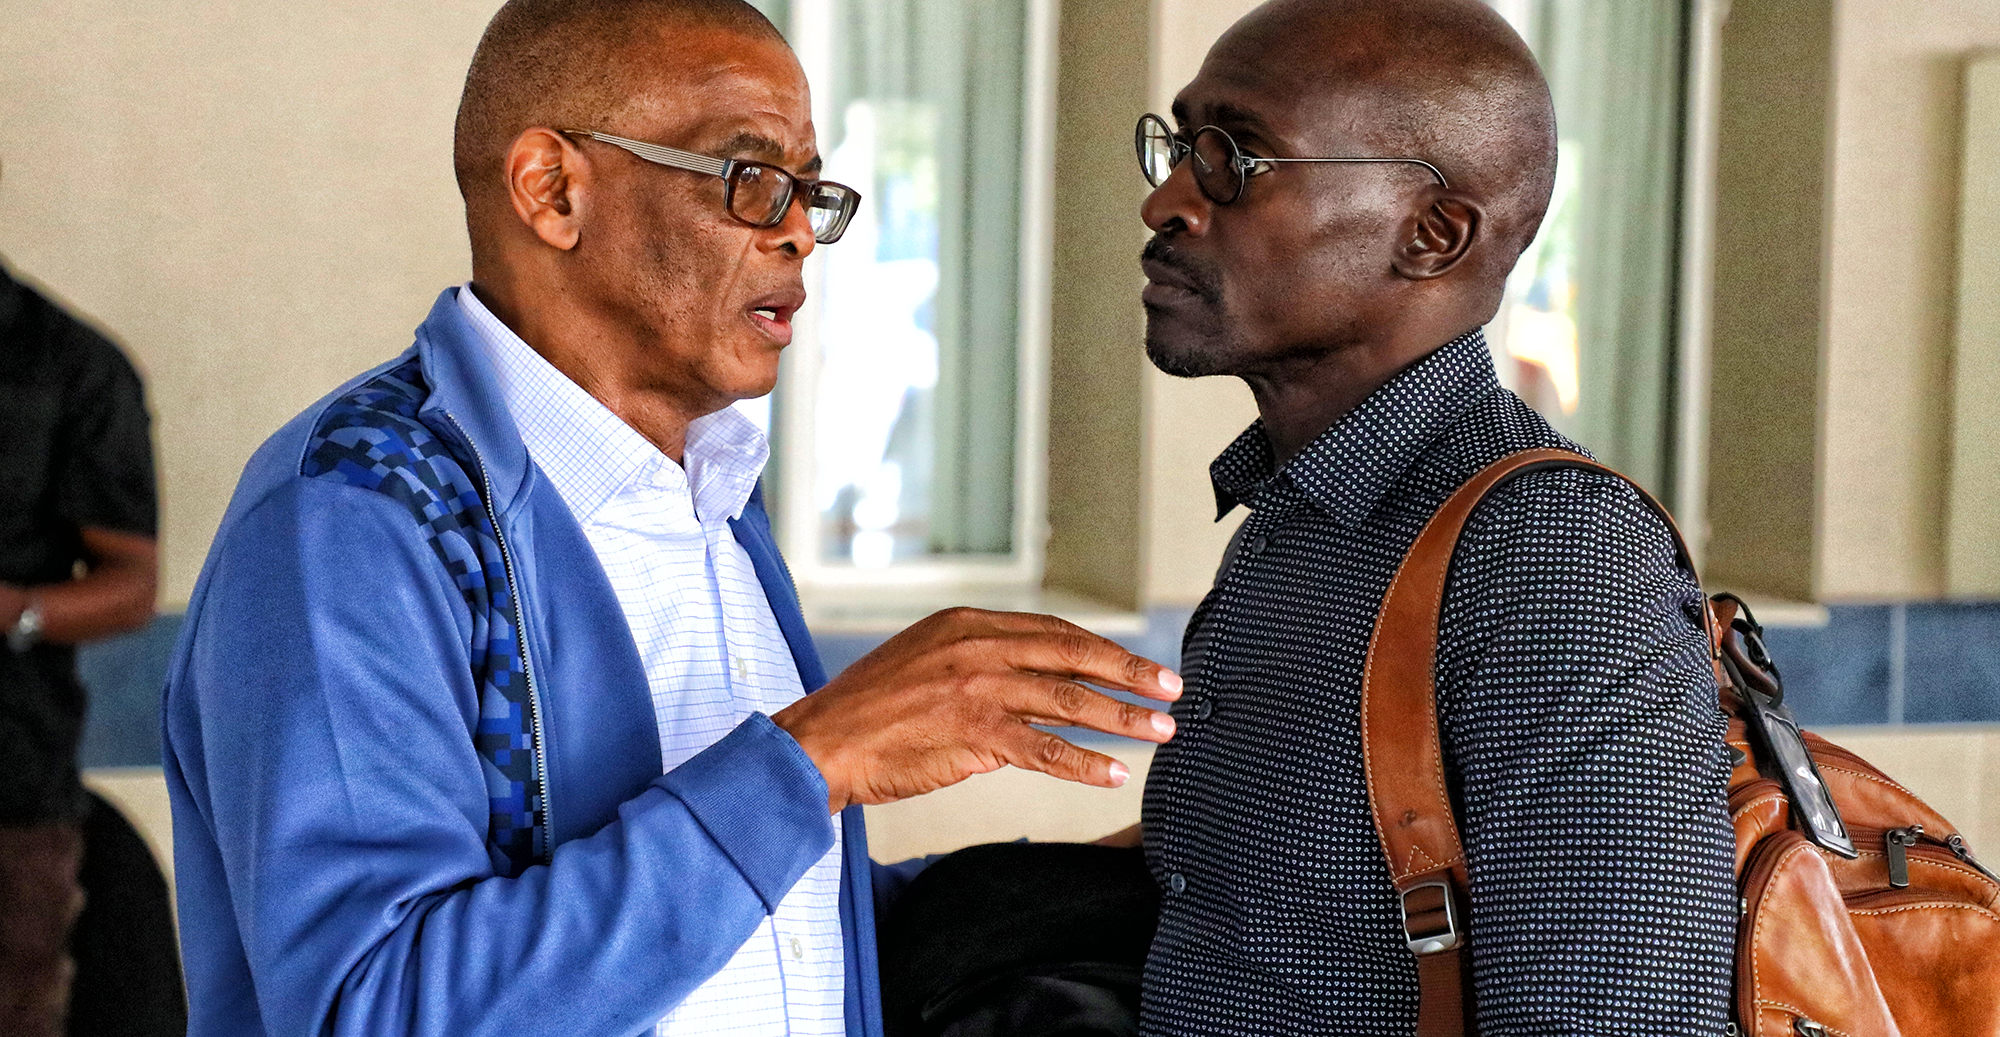 Magashule's unsteady post-election poker game, with the future of the ANC at stake